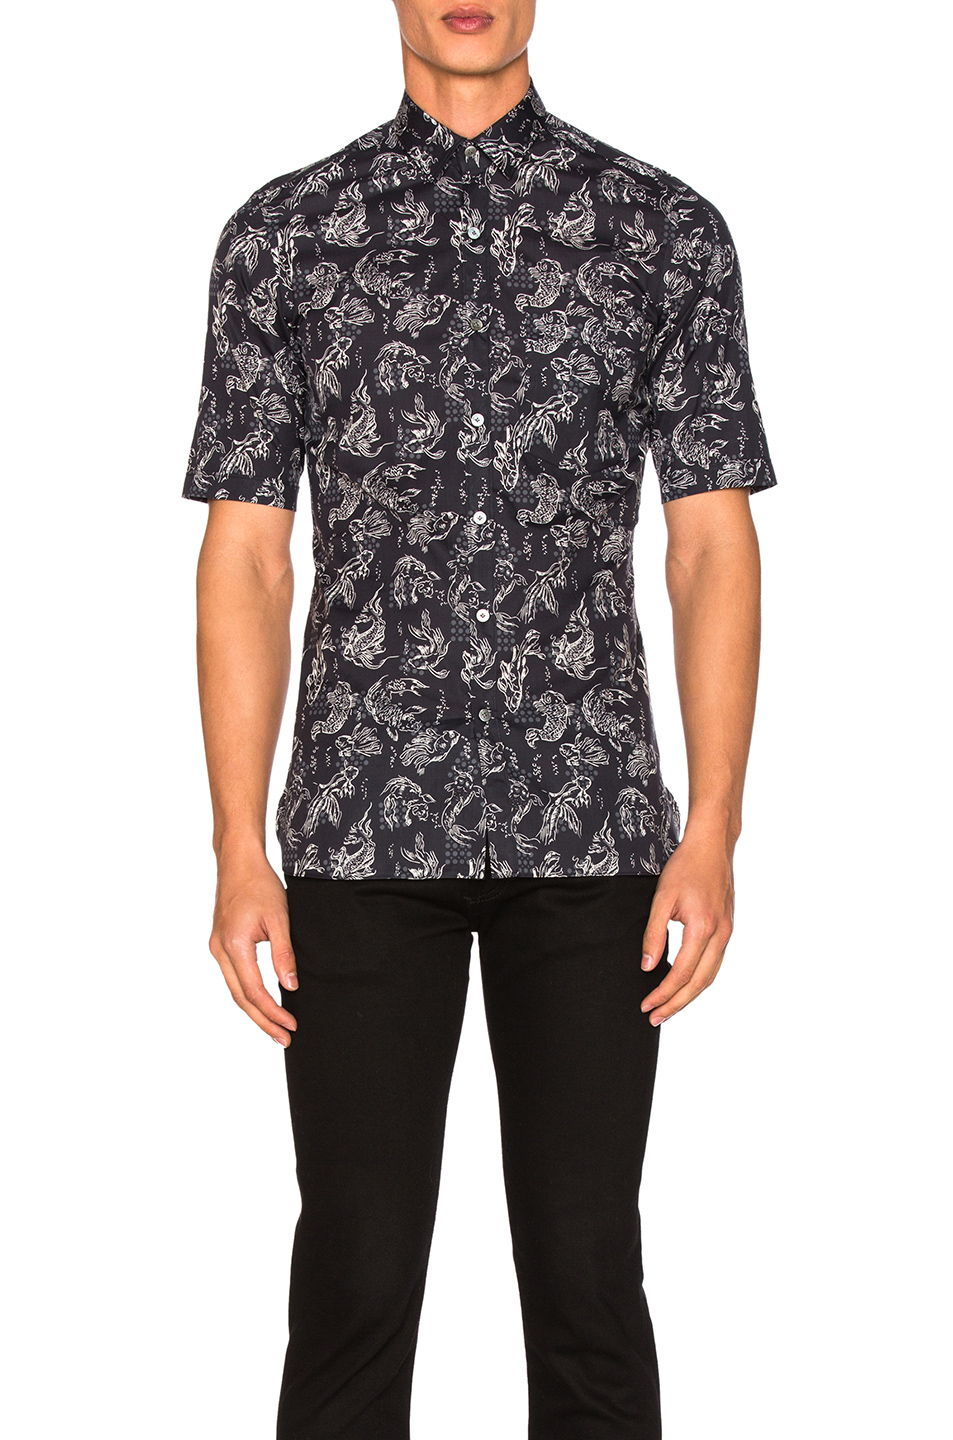 Lanvin Slim Fit Short Sleeve Shirt in Blue,Animal Print